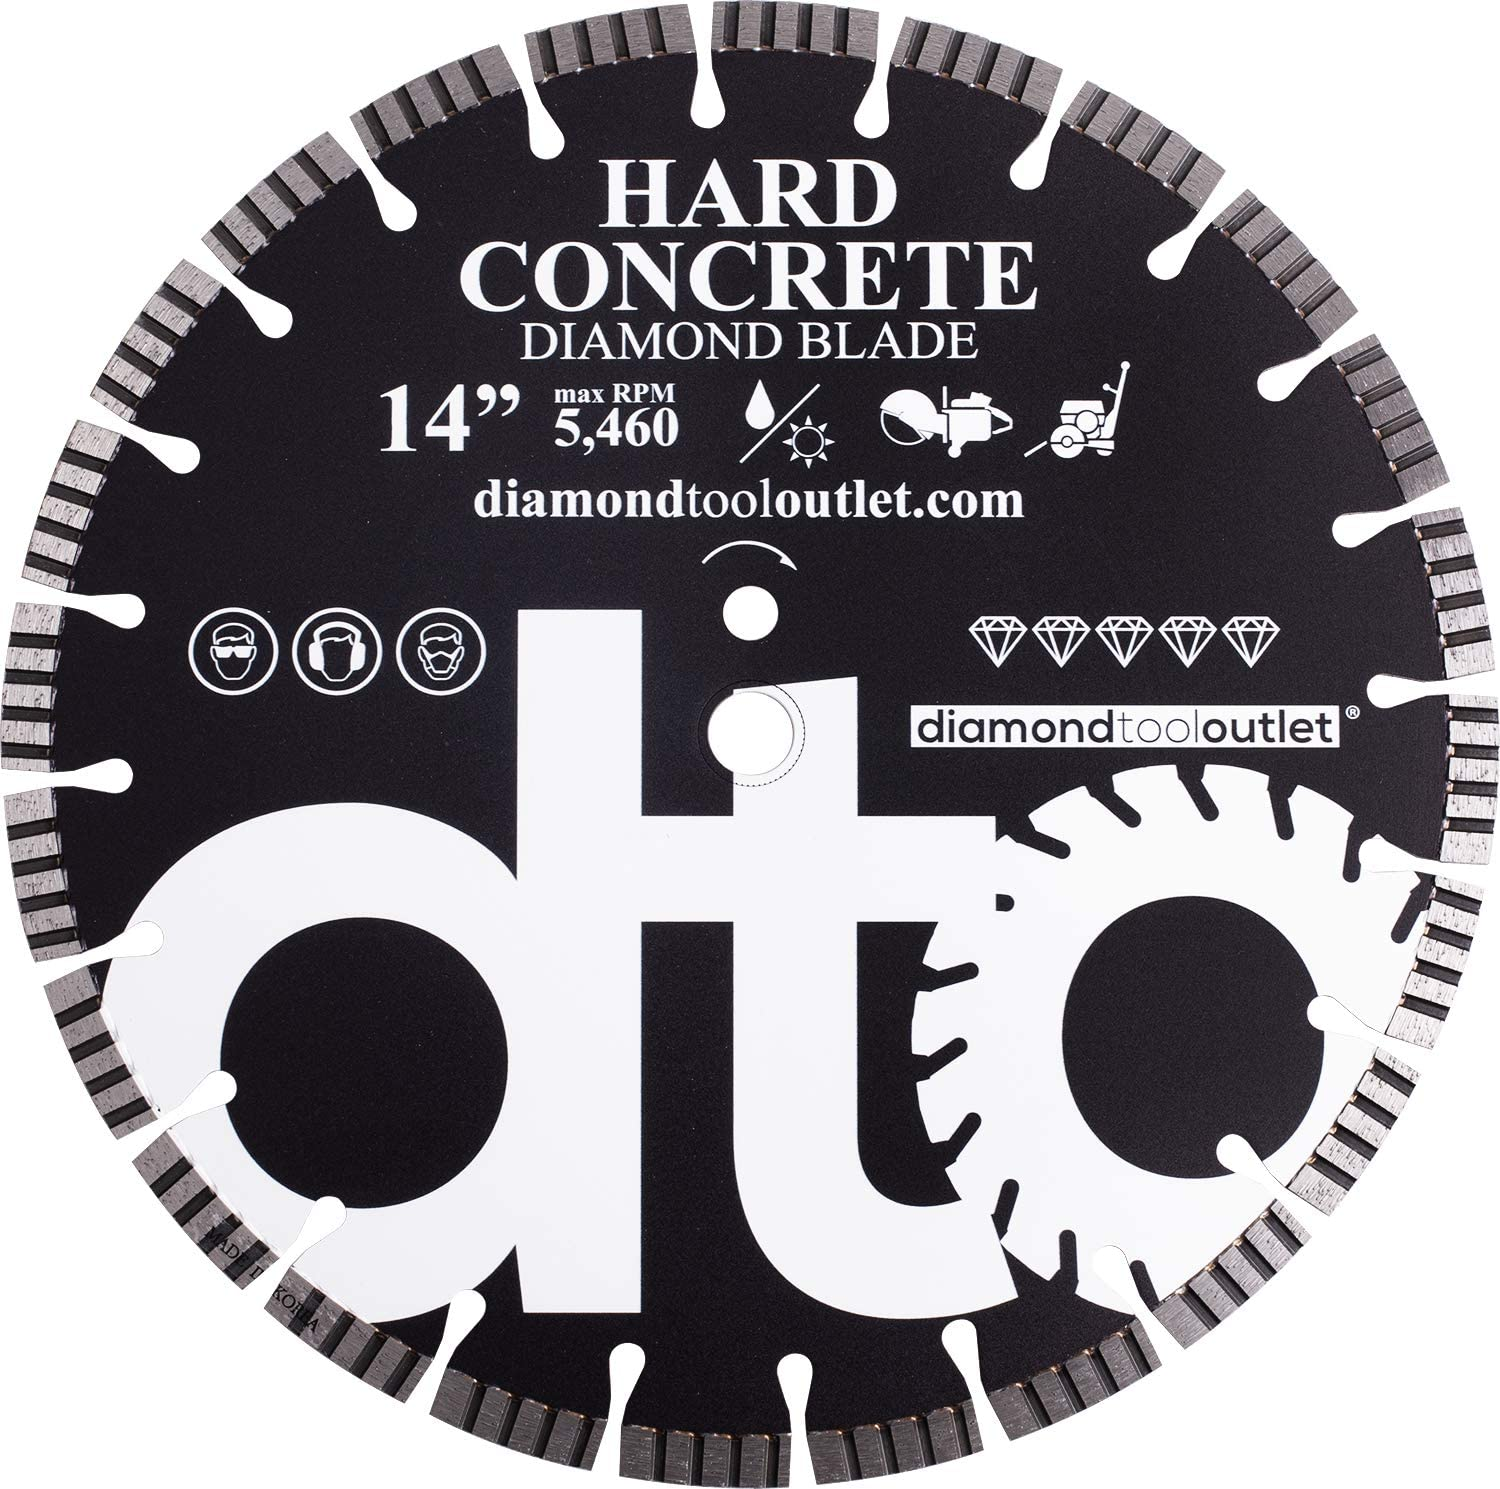 dto SHC14S 14-Inch Supreme Diamond Turbo Segmented Saw Blade for Hard Concrete, Reinforced Concrete, Hard Paver Brick, 1-Inch Arbor, Wet or Dry Cutting, 5460 Max. RPM, 12mm (.472